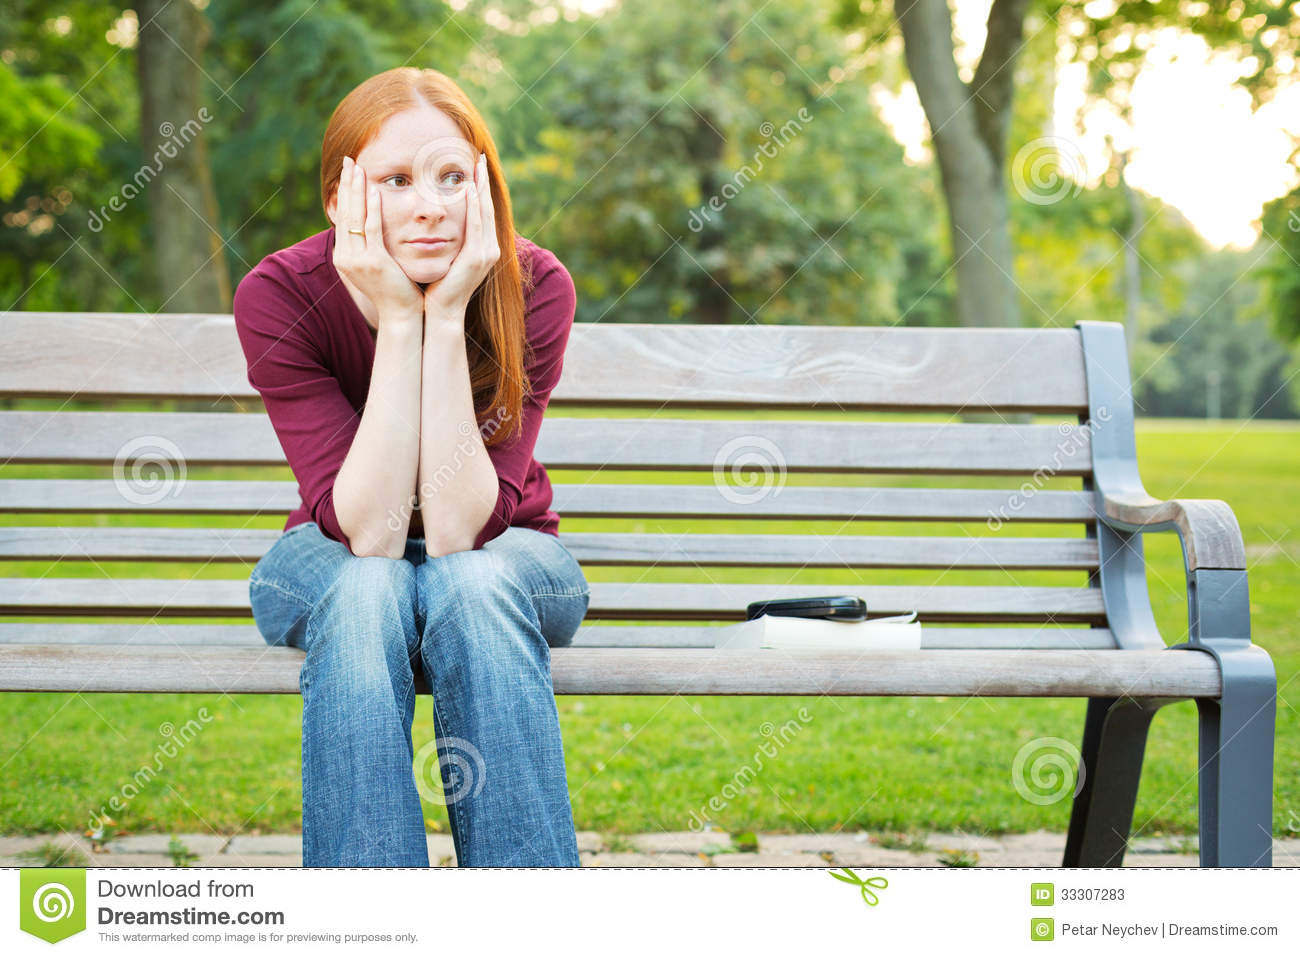 Bored Woman Sitting On A Bench Stock Photos - Image: 33307283